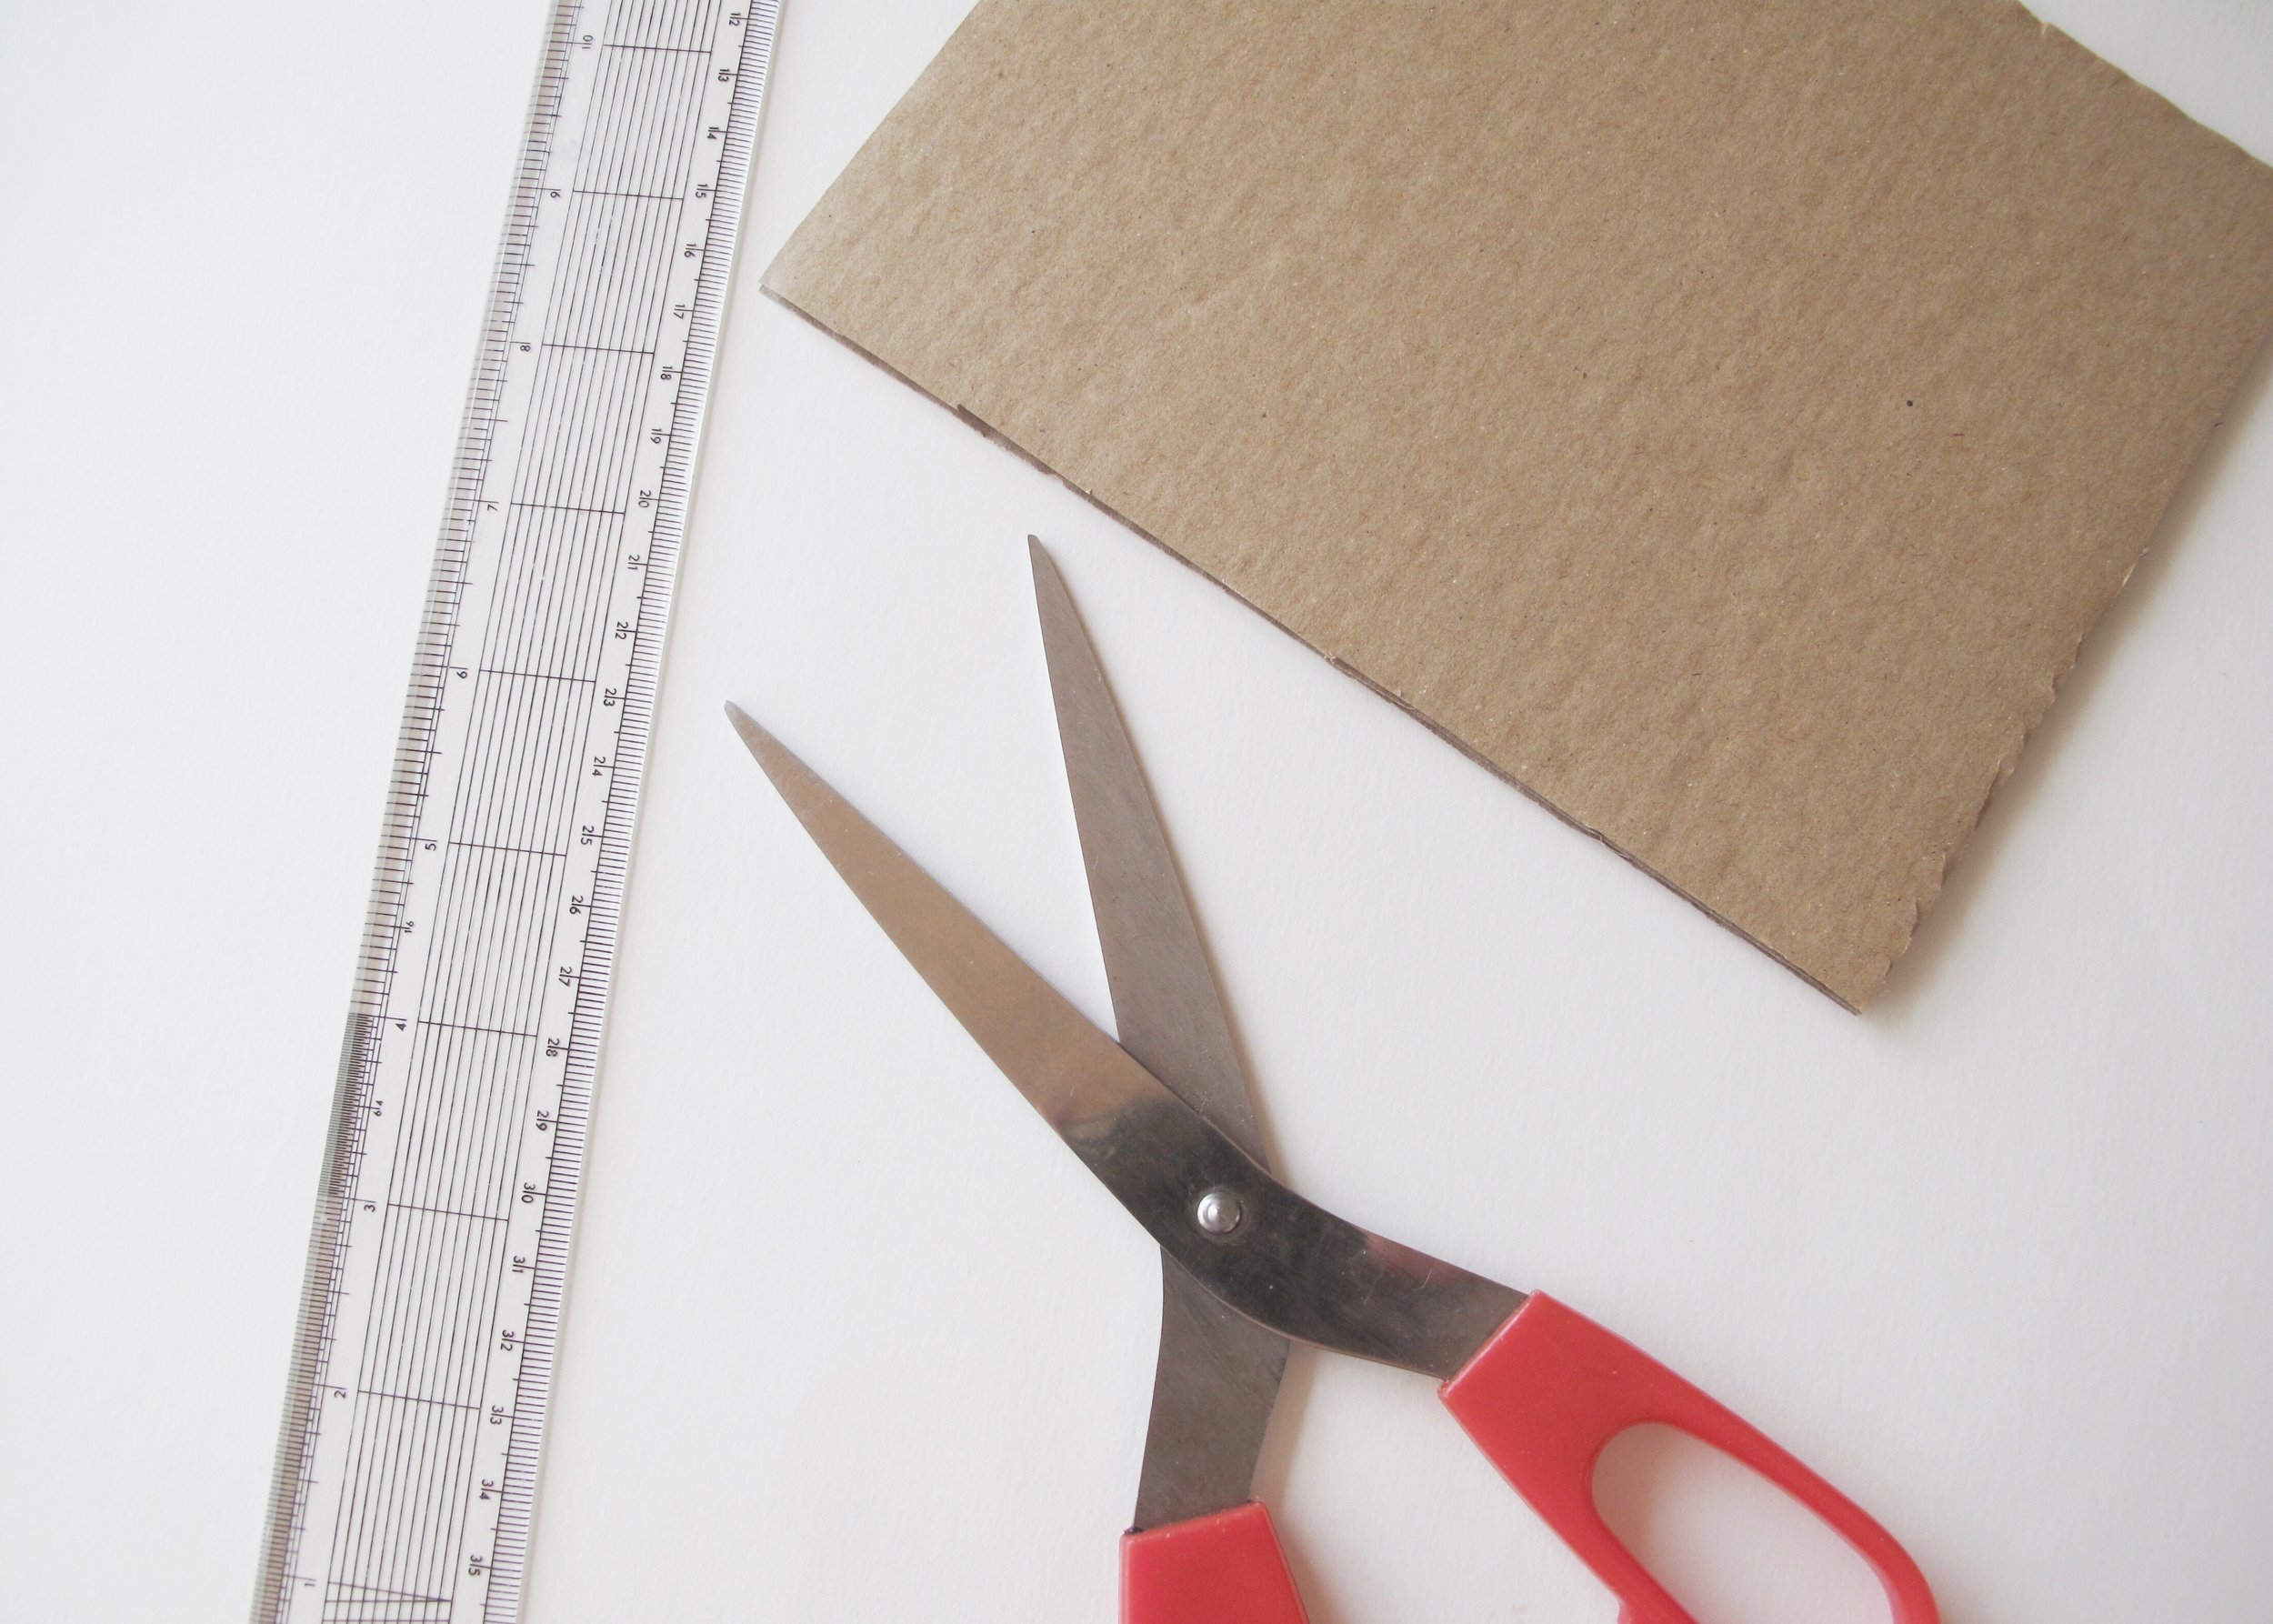 2. - Next, measure the length of your zip. This is going to be the width of your bag. Use this measurement to draw out a rectangle on a piece of card, which is the size that you would like your bag to be.